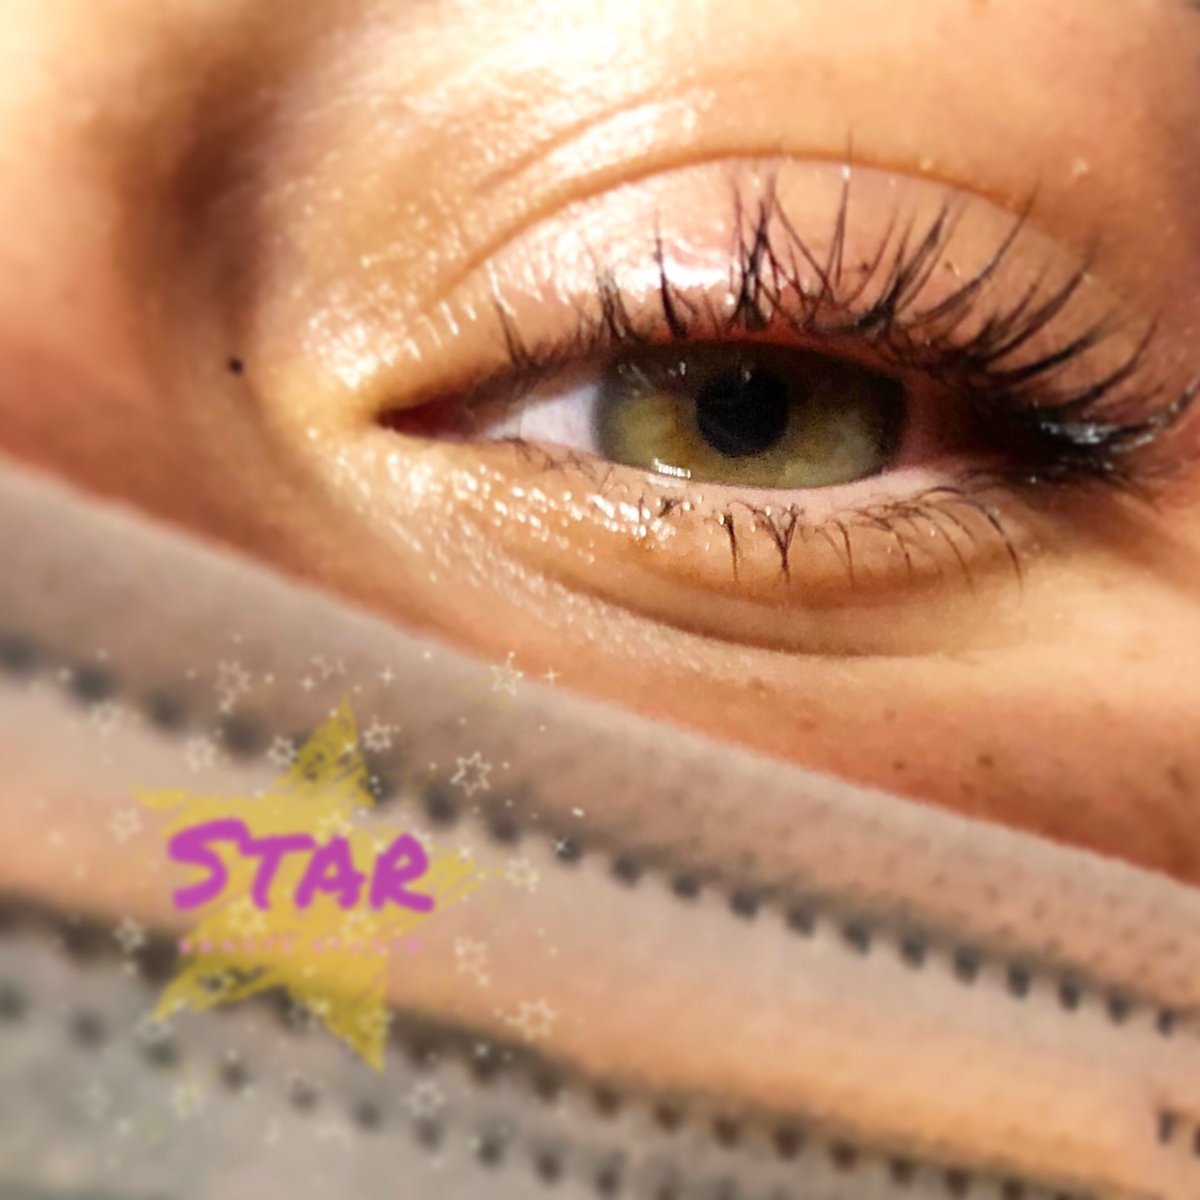 Let's enhance your natural lashes ladies   Enhanced lashes for 8-12 weeks   Ig: _StarBeautyStudio_ Booking: http://StarBeautyStudio.glossgenius.com  #lashliftsandtints #lashtinting #lashlifting #naturallashes #lashespic.twitter.com/U2RPDxV6iC